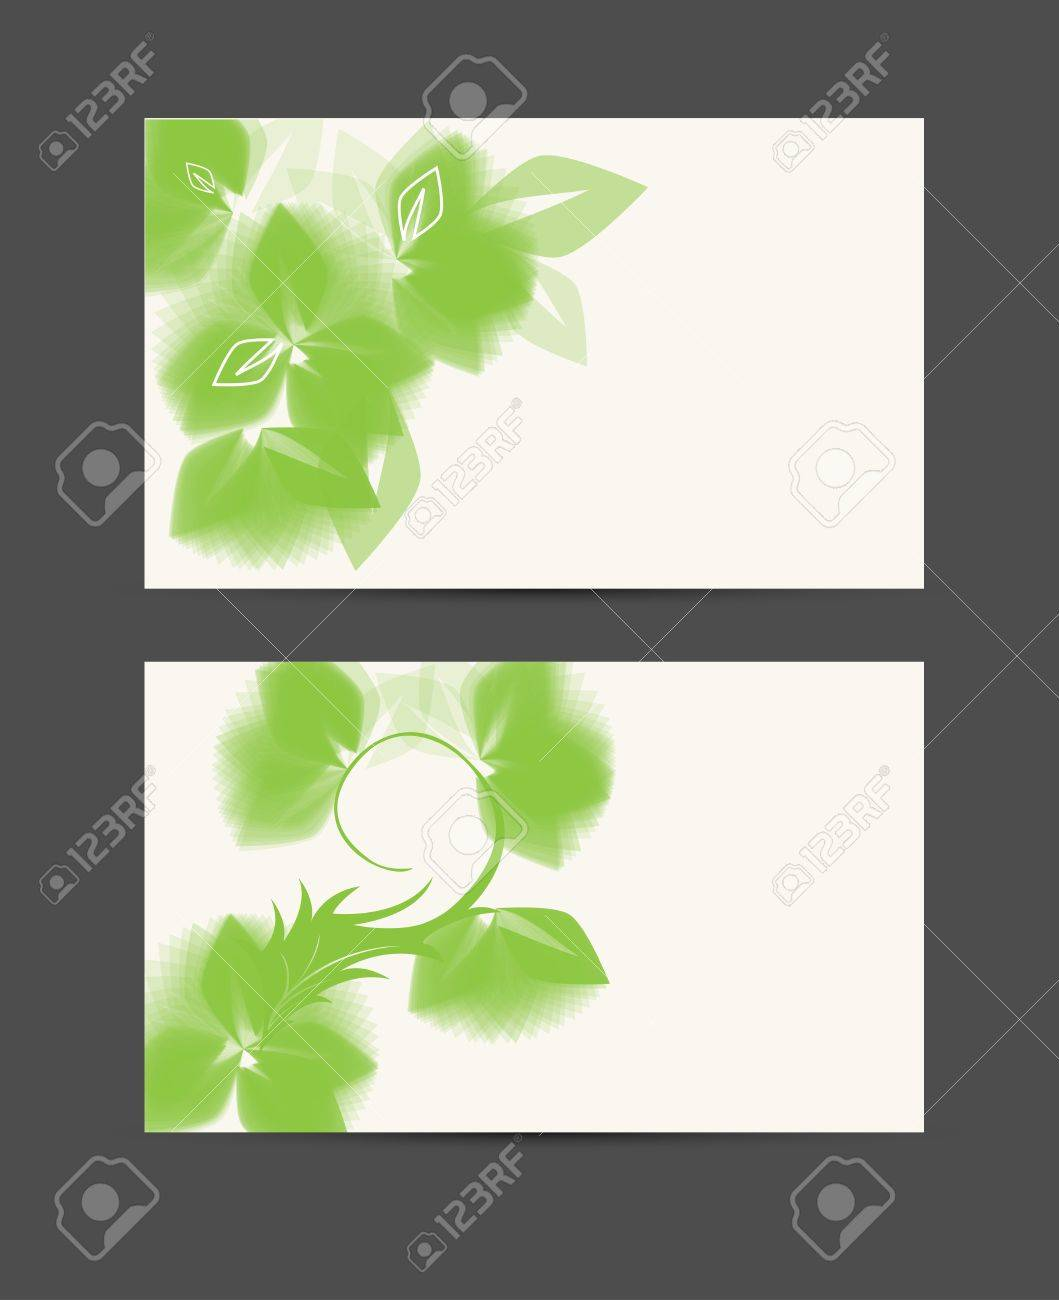 Abstract Futuristic Business Card Stylized With Green Leafage